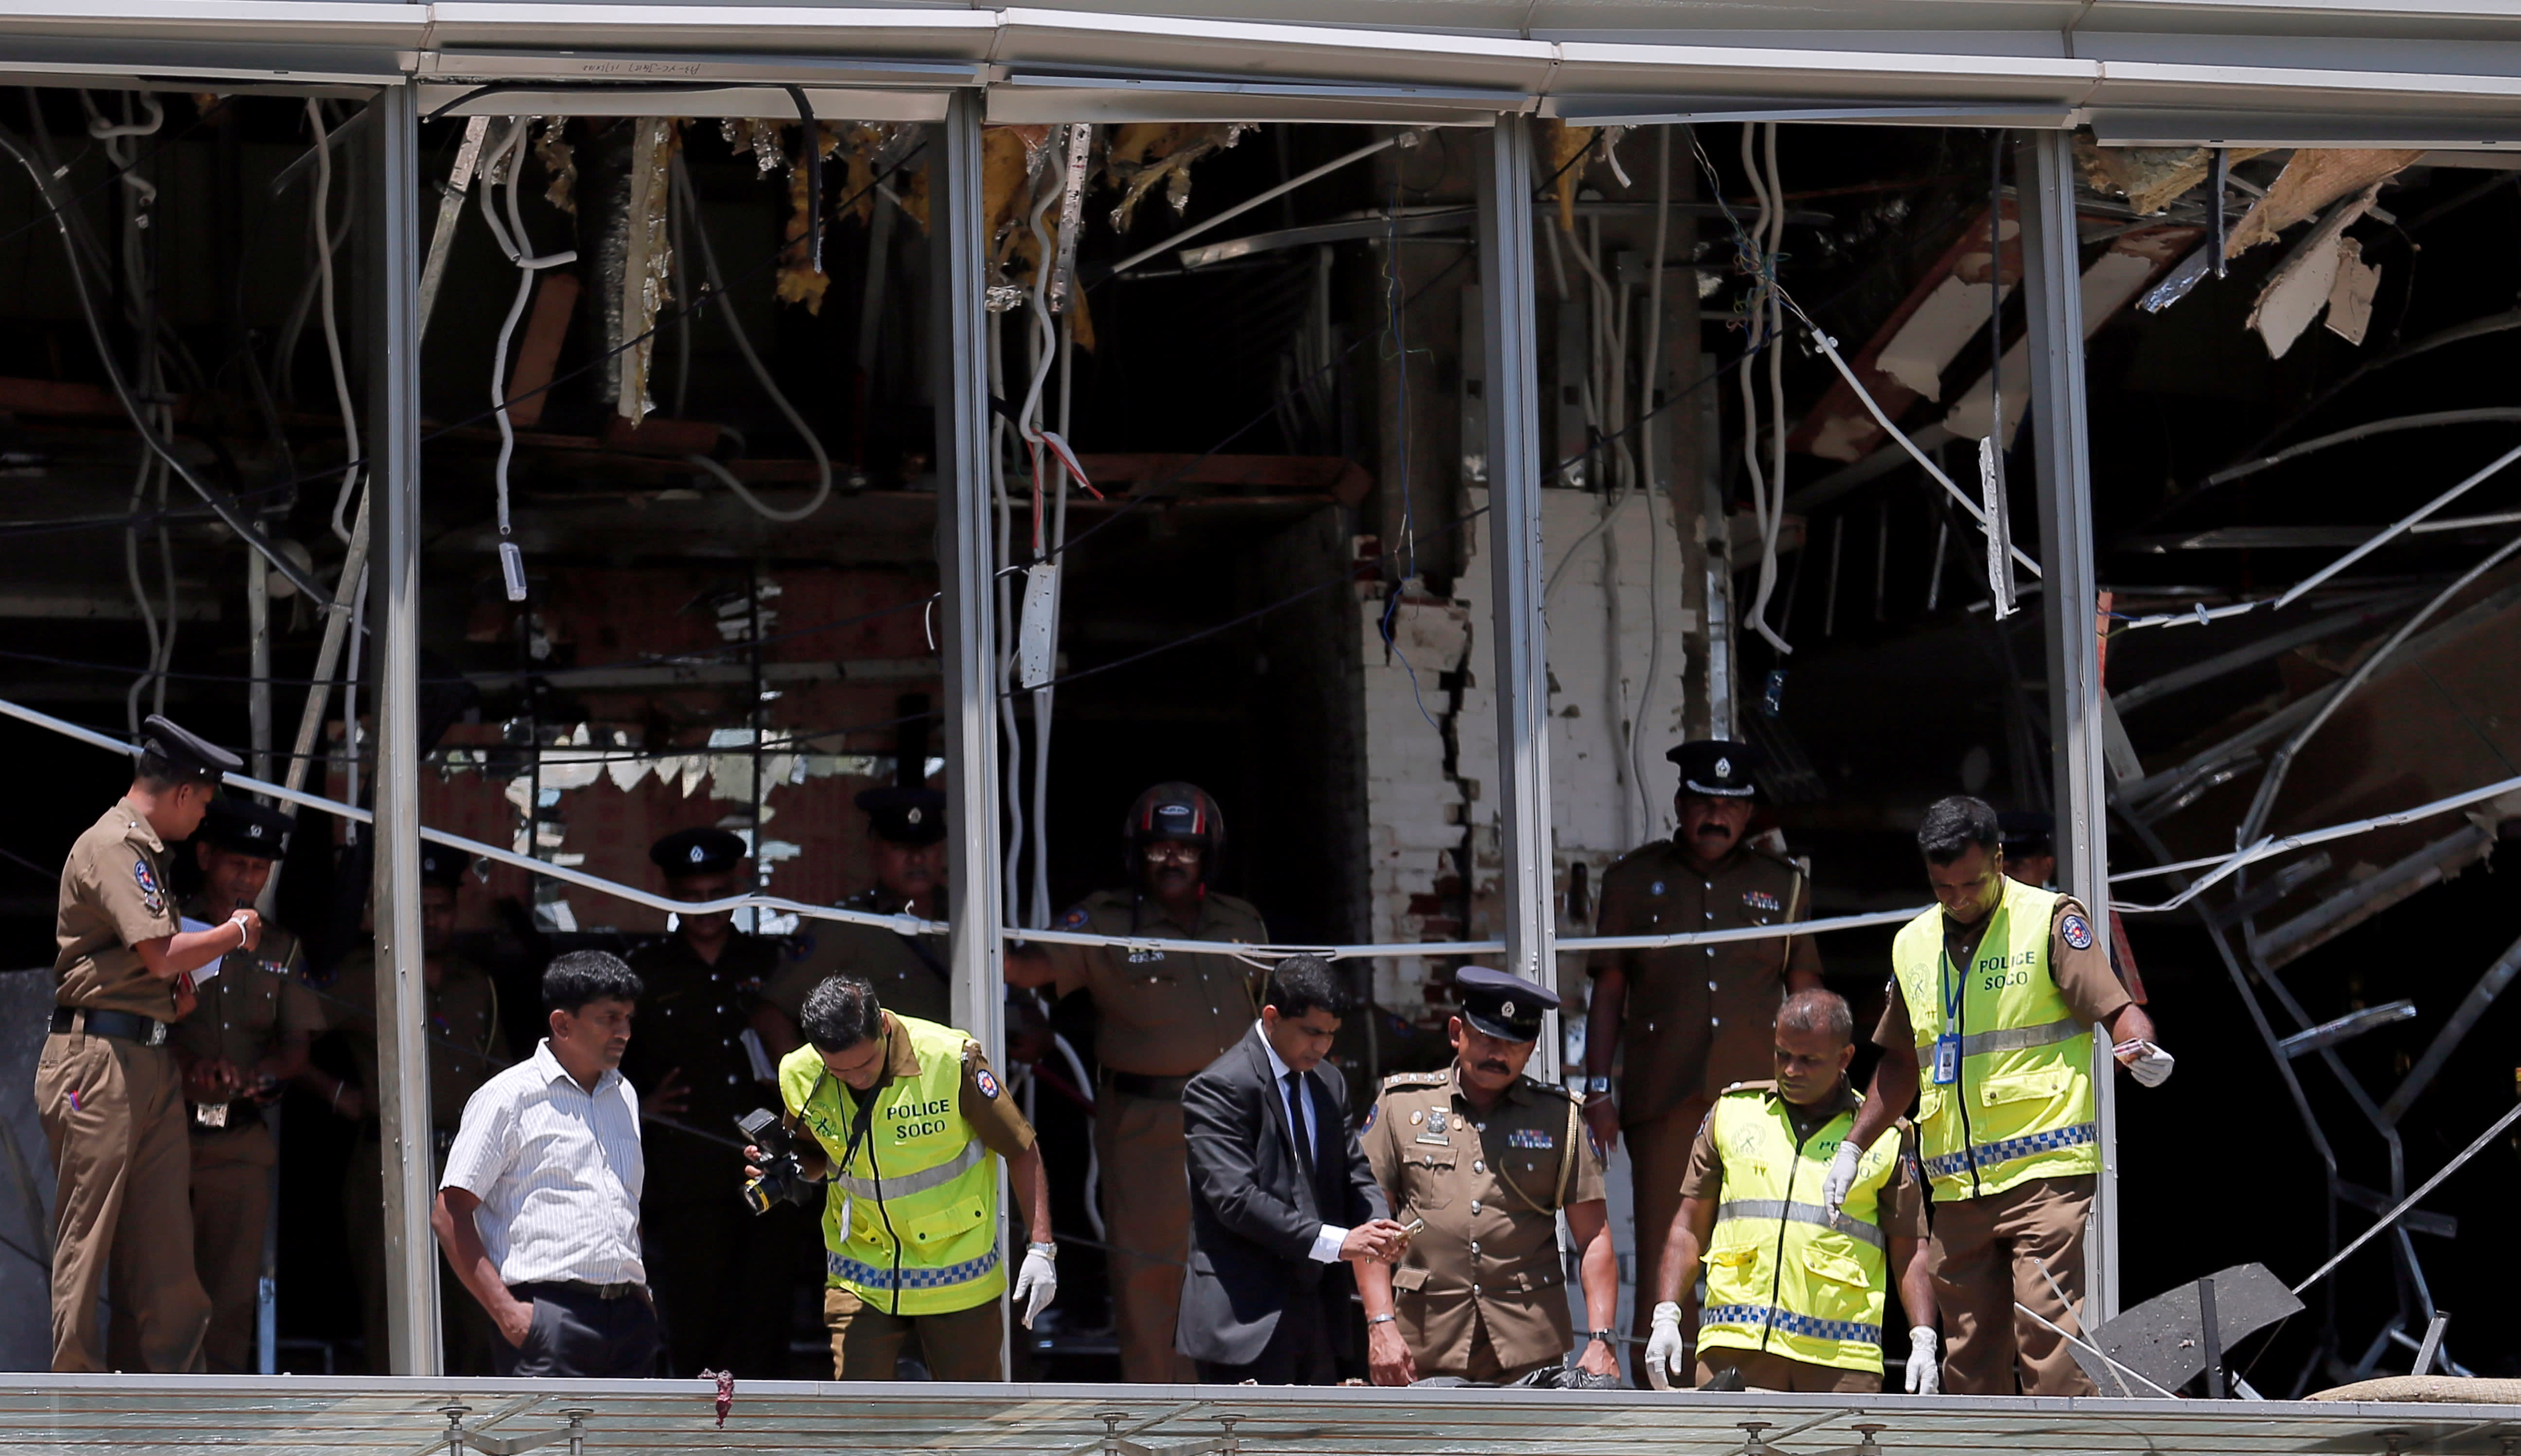 Bombs kill at least 207 in Easter attacks on churches, hotels in Sri Lanka